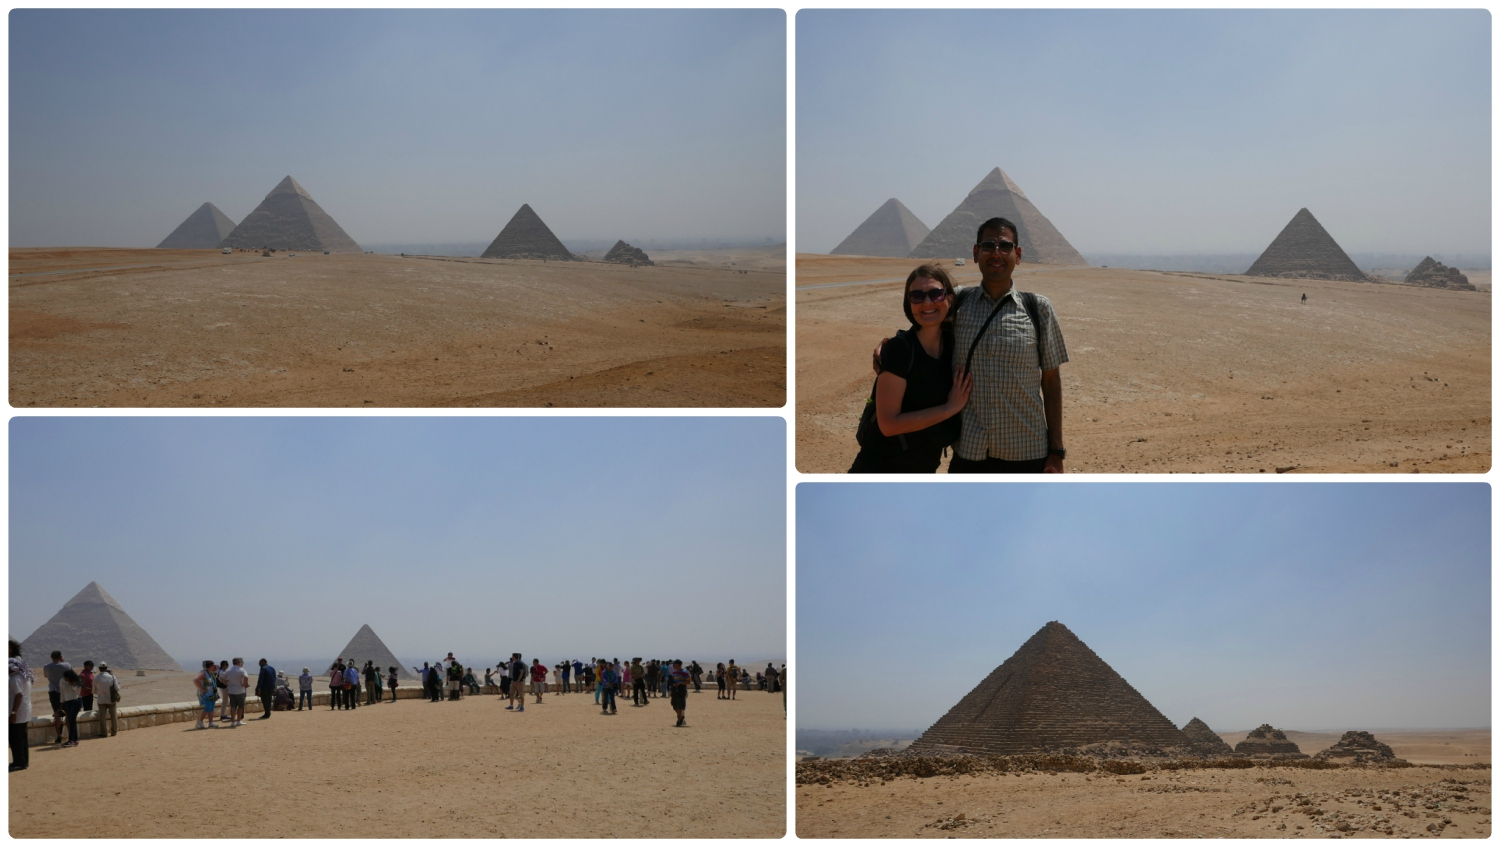 Clockwise (from the top): The iconic shot of the pyramids lined up, us in front of the pyramids, Pyramid of Mankaure and the three smaller Queen's Pyramids, the outlook point with visitors taking pictures of and with the pyramids.